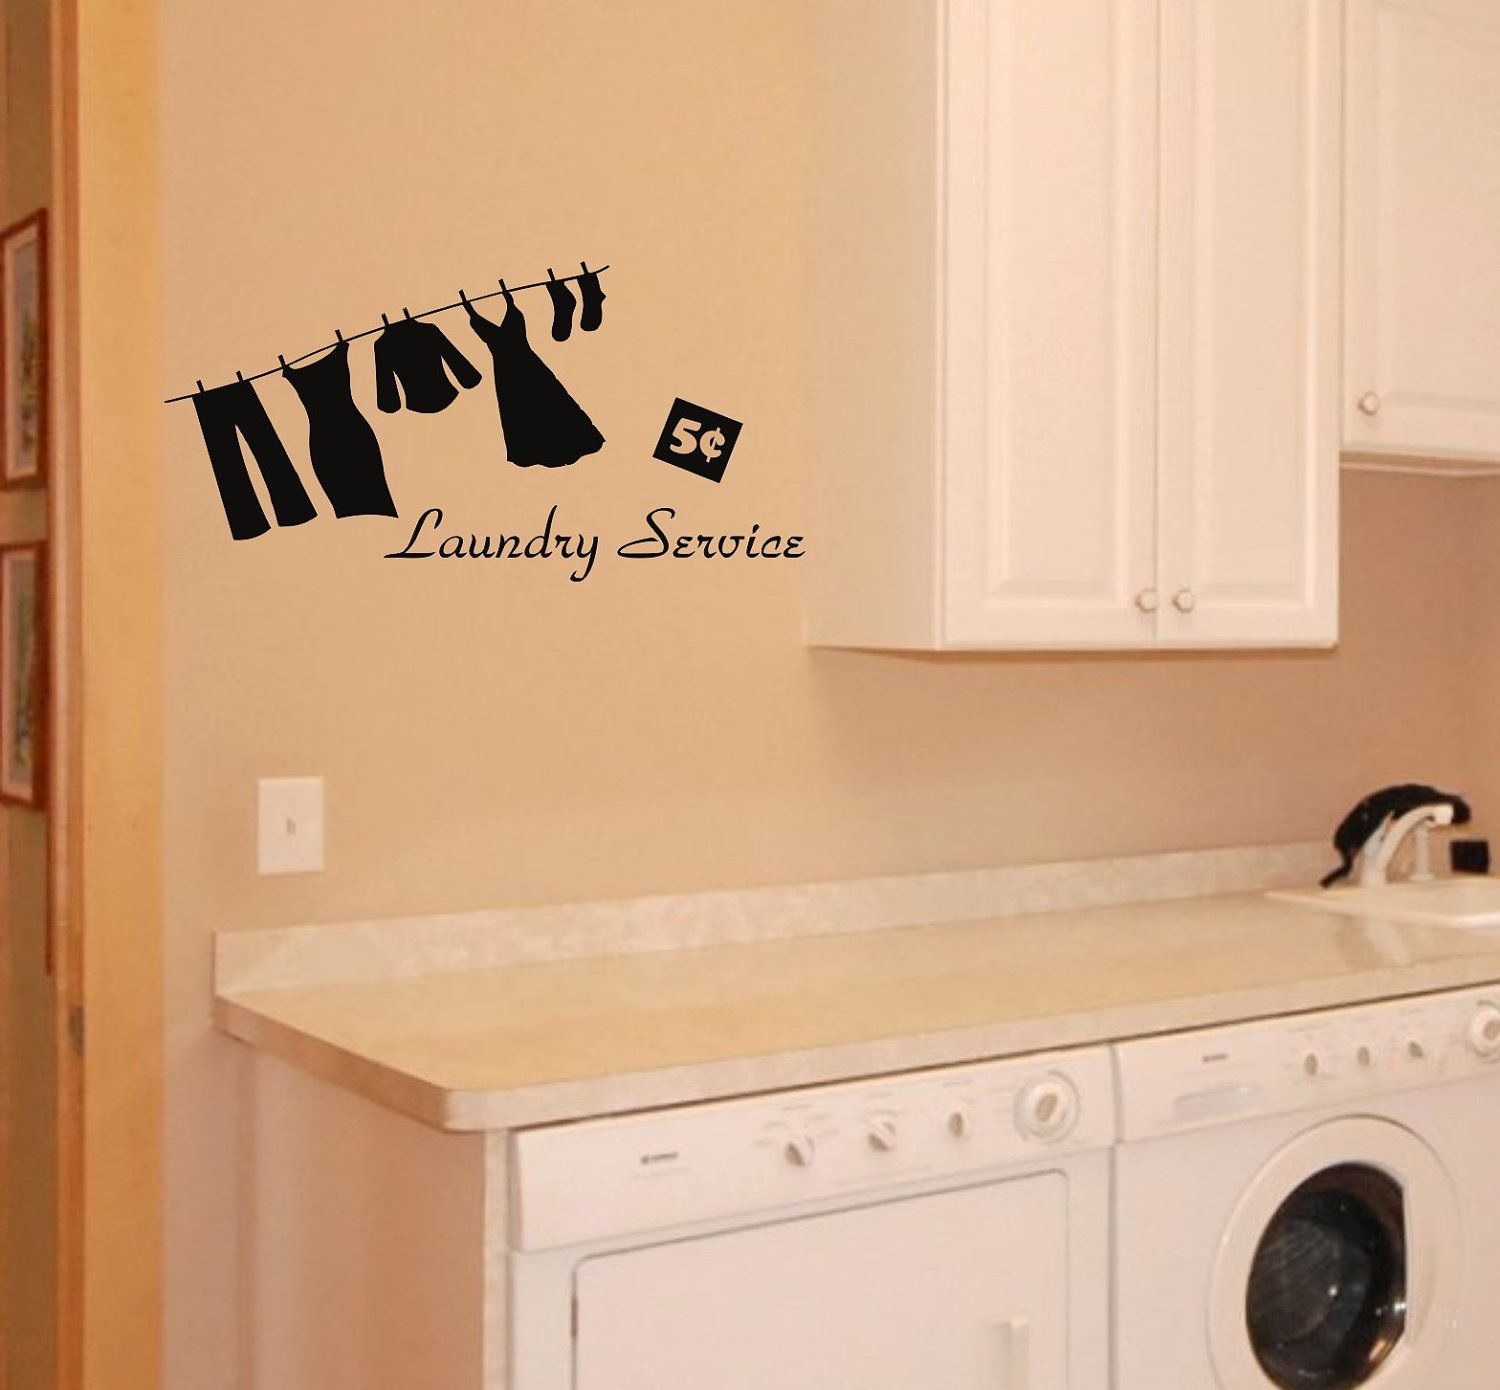 Laundry Room Wall Decor Stickers New Laundry Service Wall Decal  Home Decor  Pinterest  Laundry Inspiration